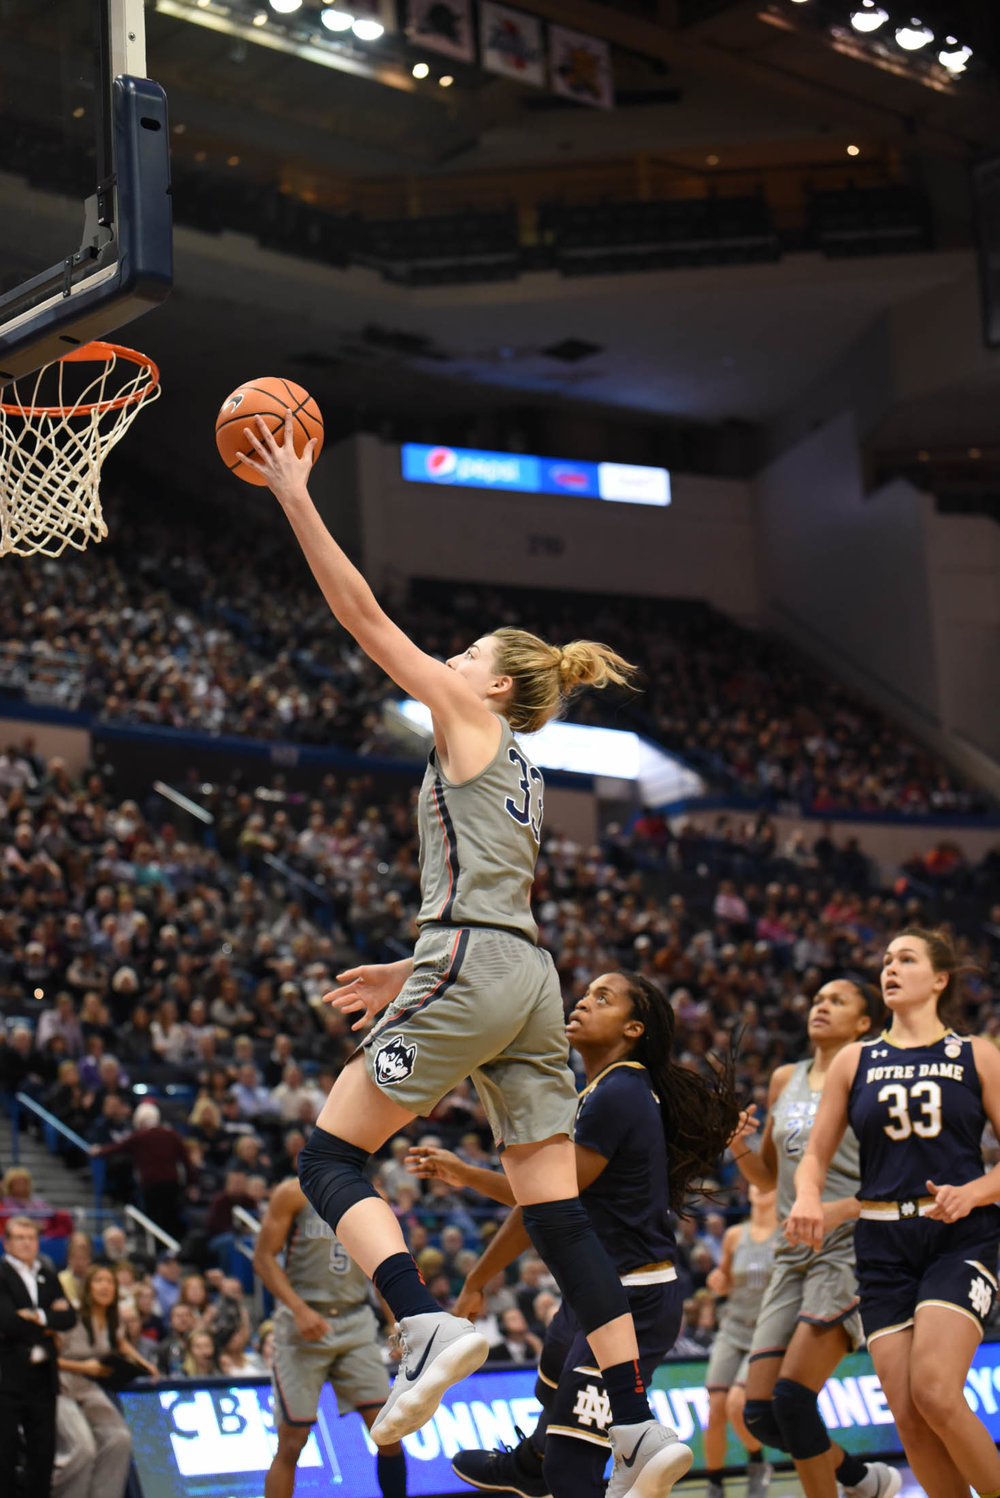 Katie Lou Samuelson goes up for a layup during a fast break. (Charlotte Lao/The Daily Campus)